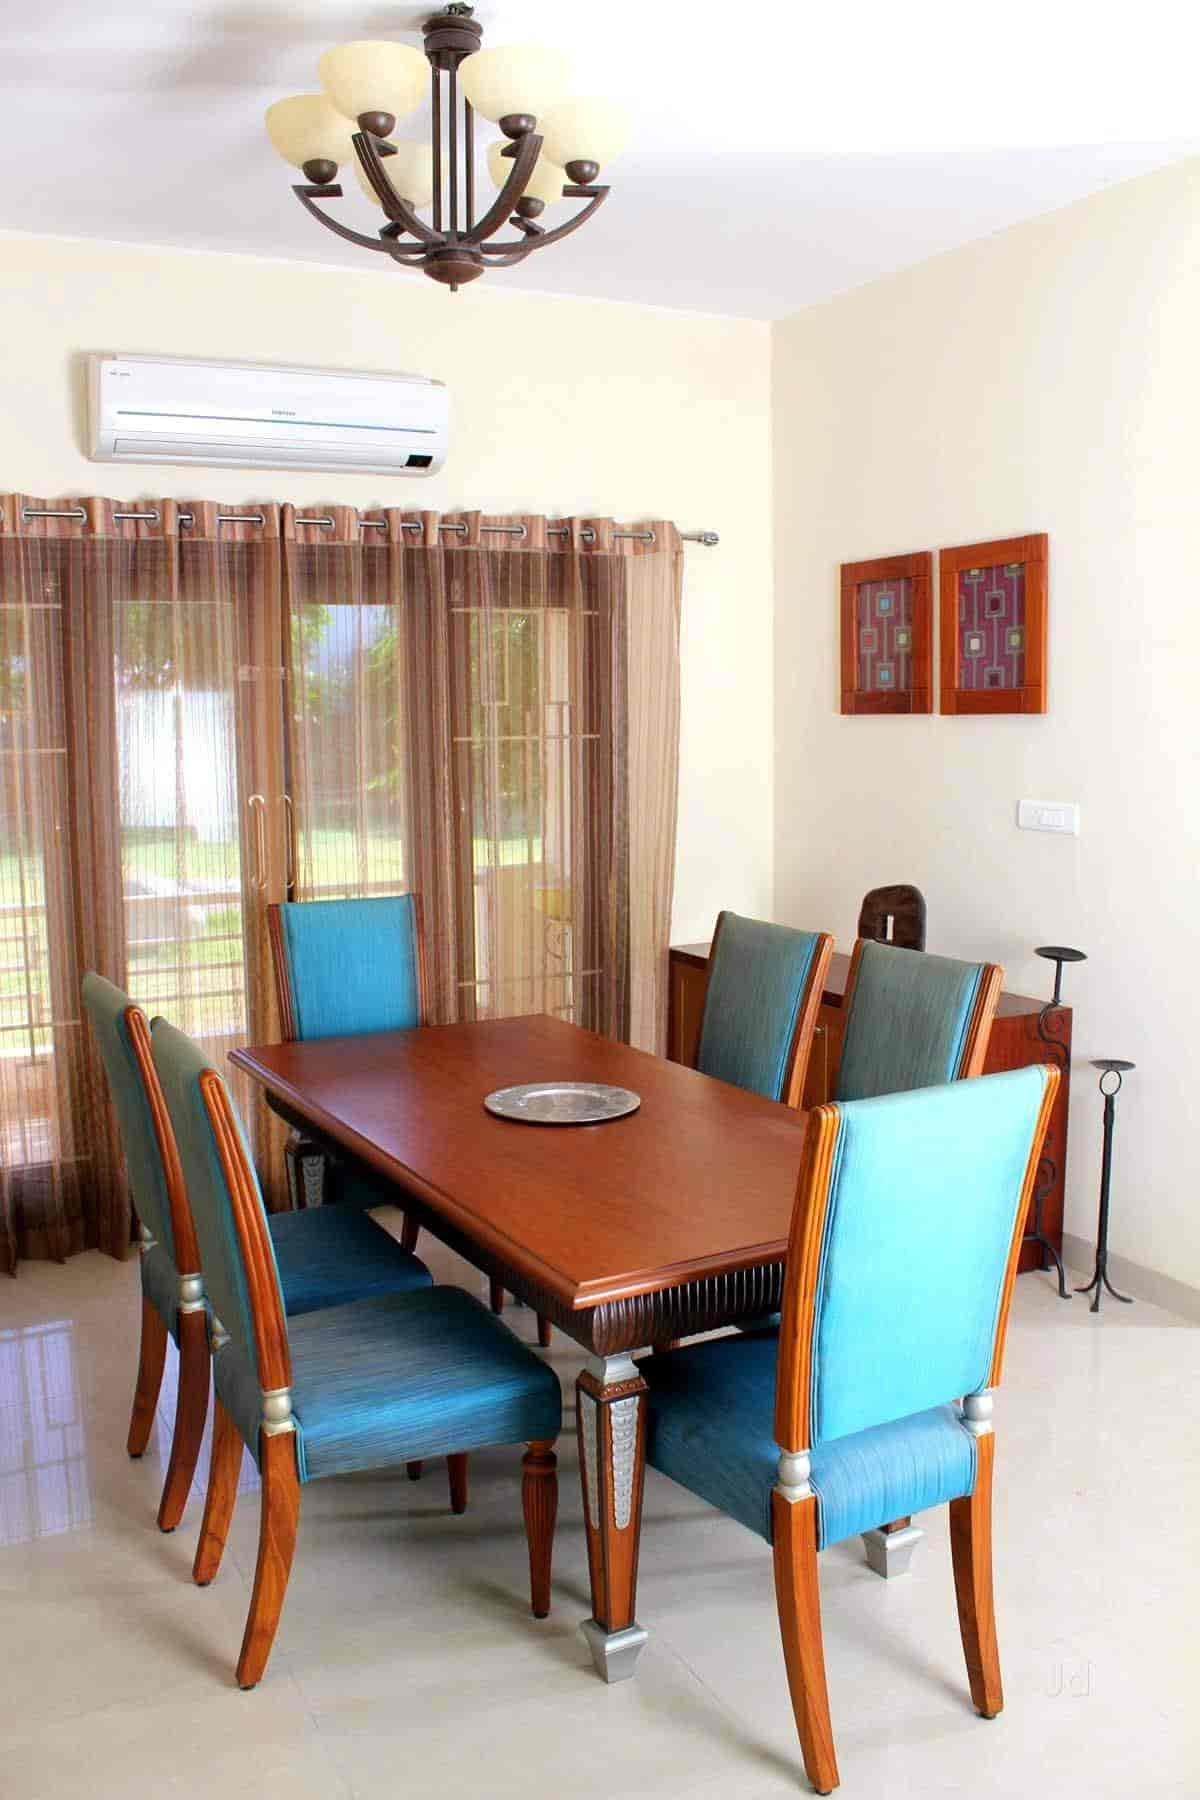 Whitehouse By Gj Photos Sidhapudur Coimbatore Pictures Images